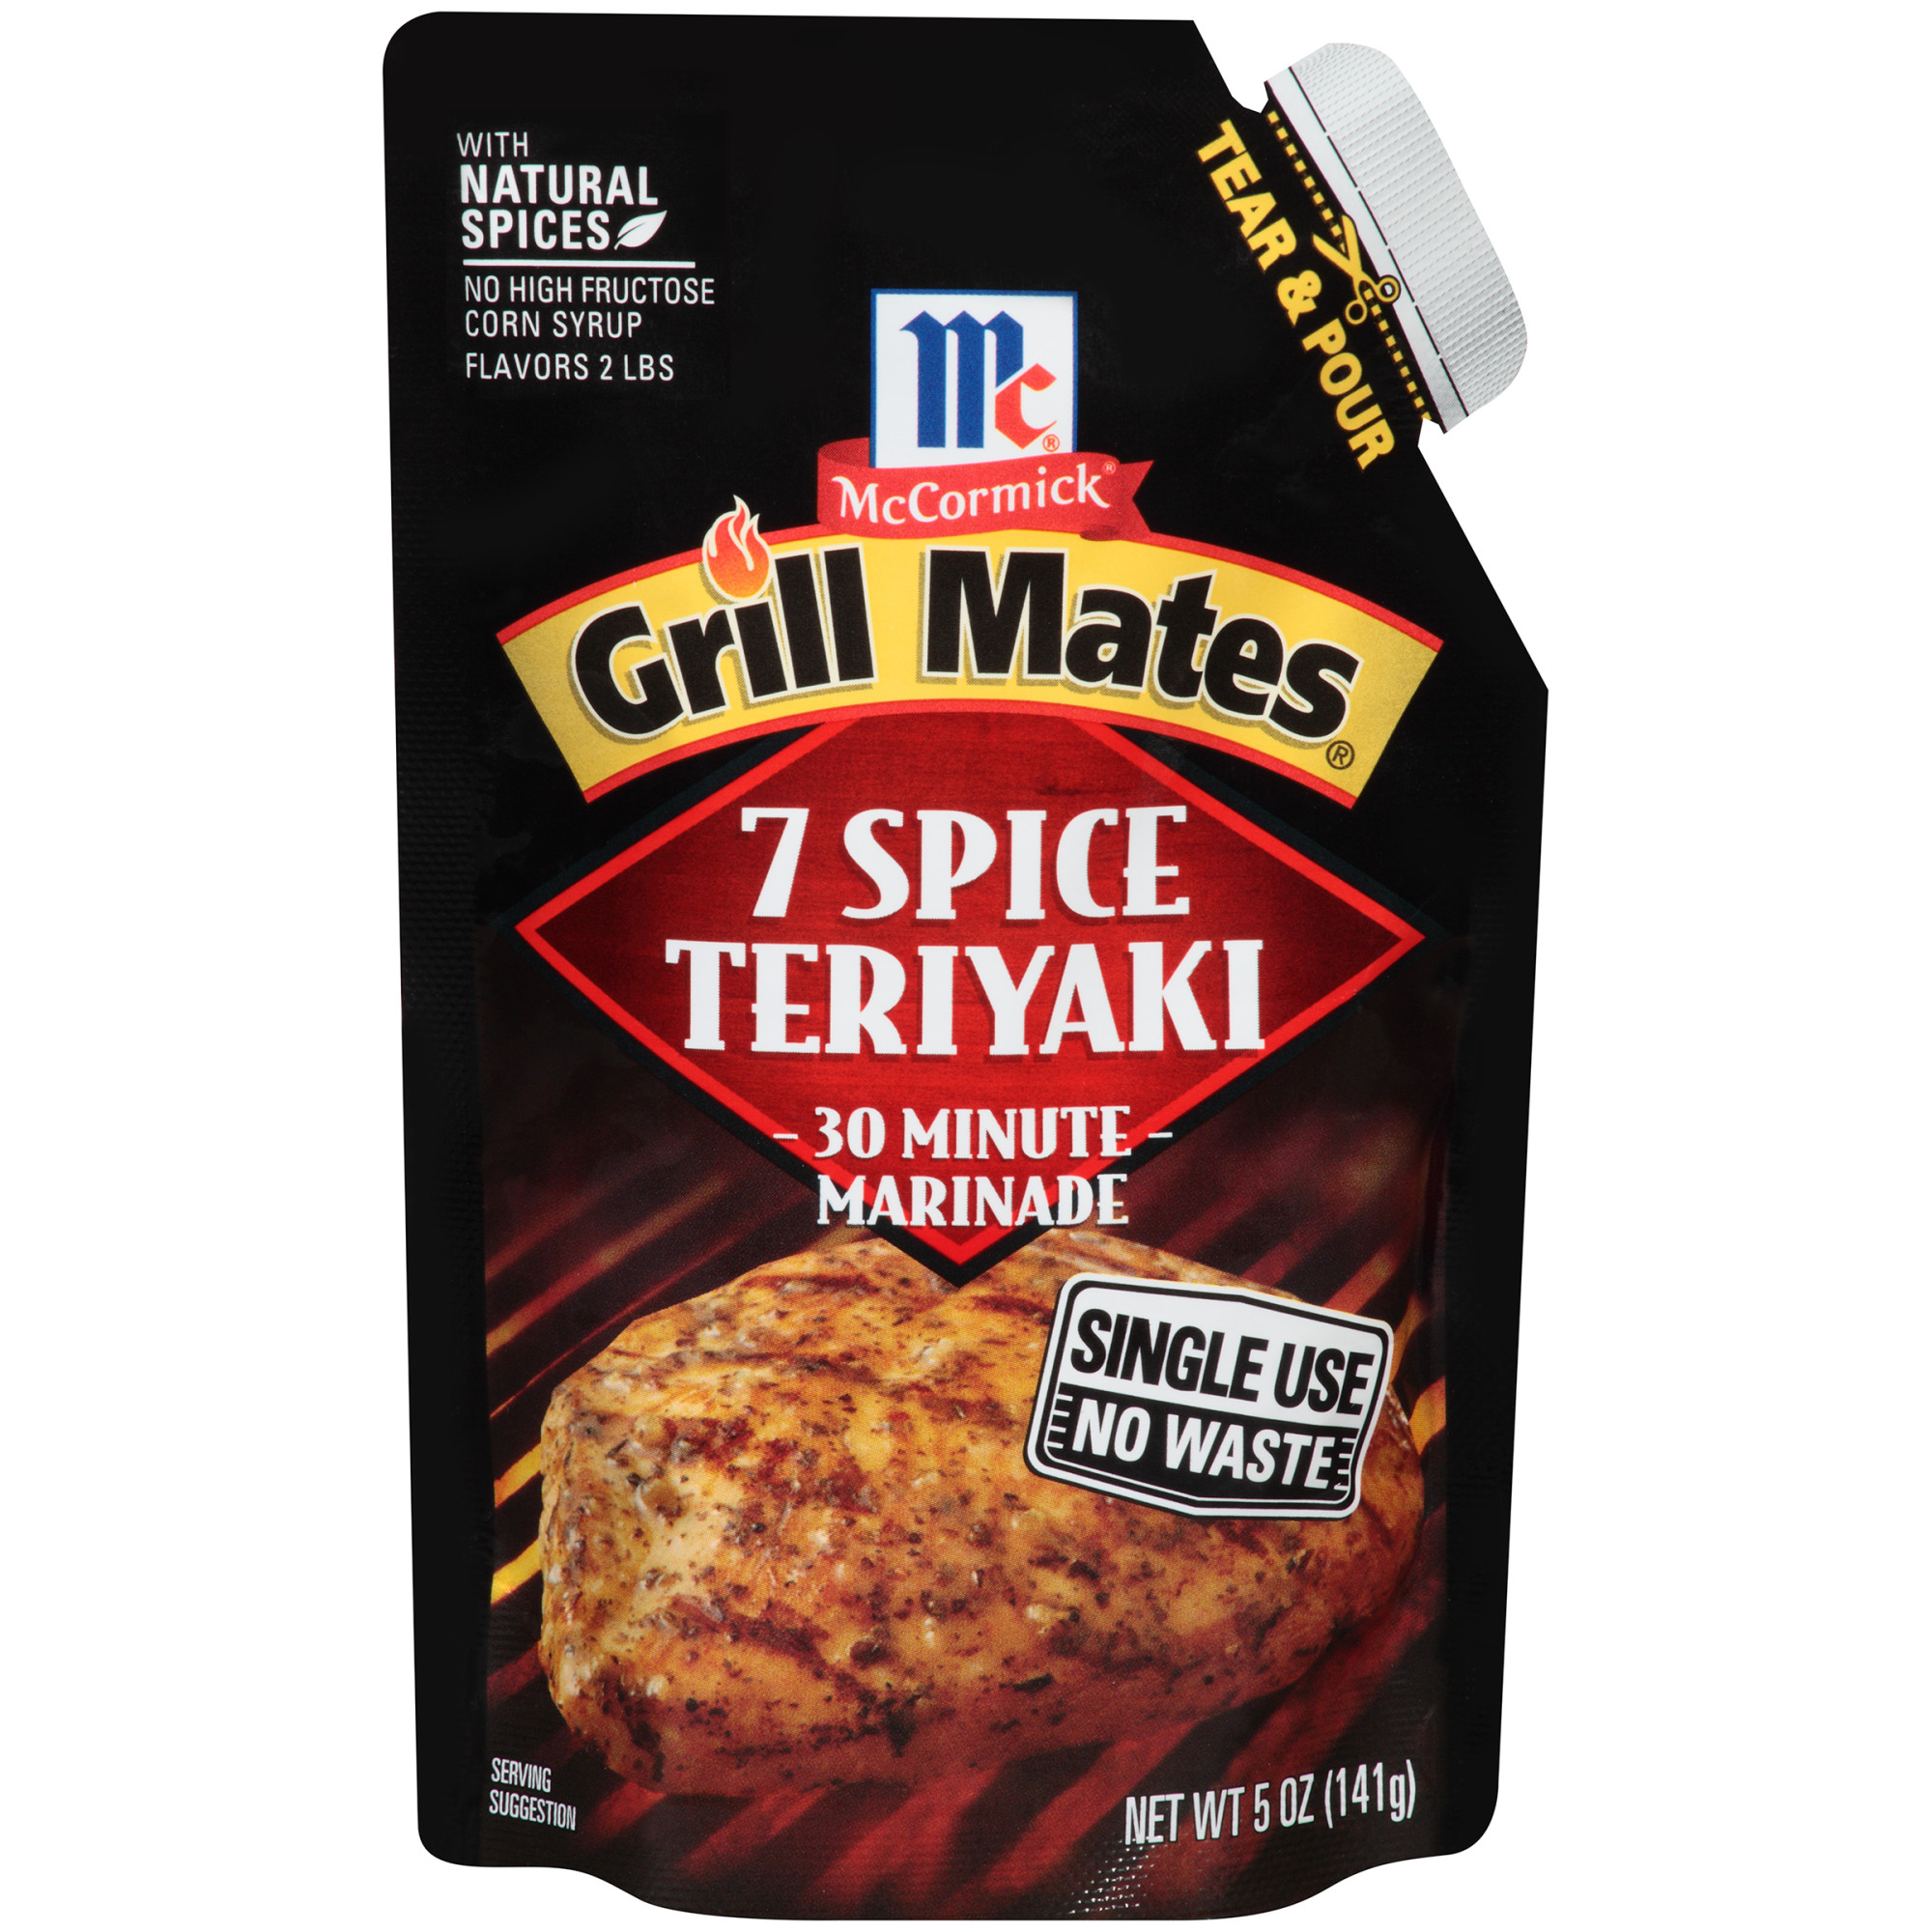 McCormick Grill Mates 7 Spice Teriyaki Single Use Marinade, 5 oz